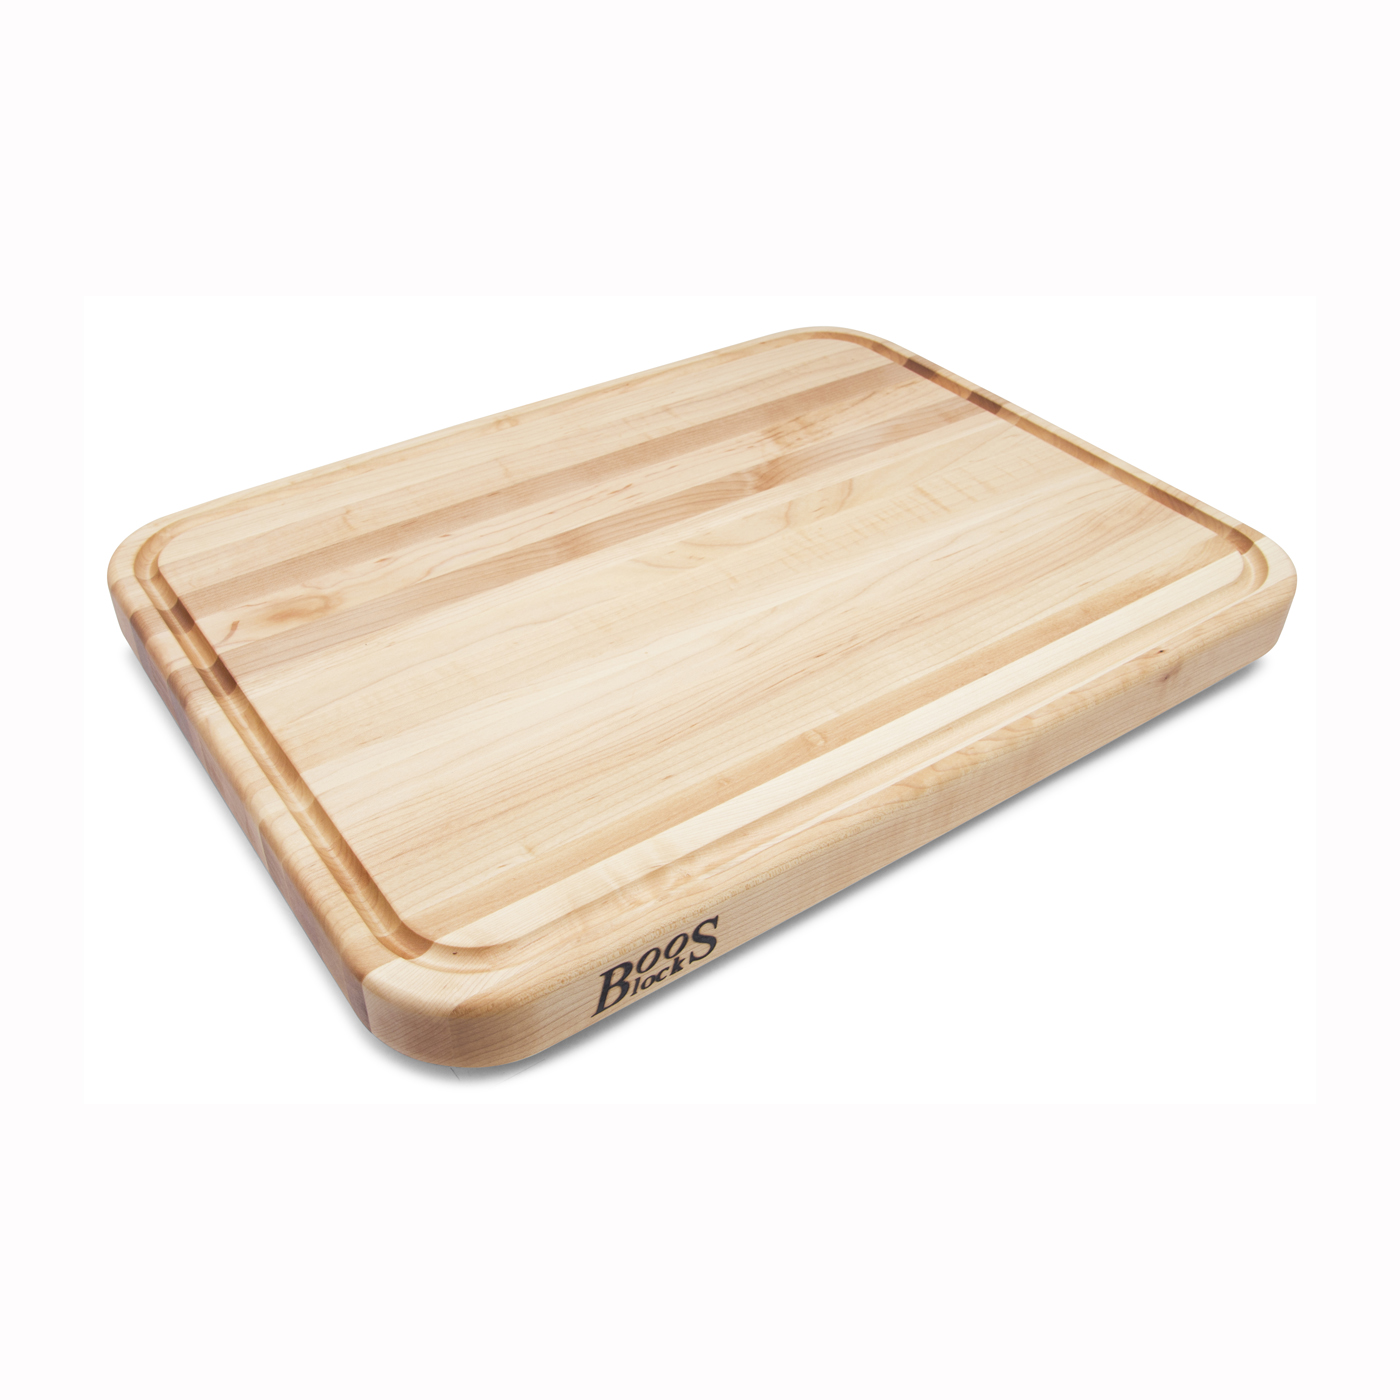 NEW John Boos Reversible Maple Cutting Board with Juice Groove 24 x 18 x 2.25